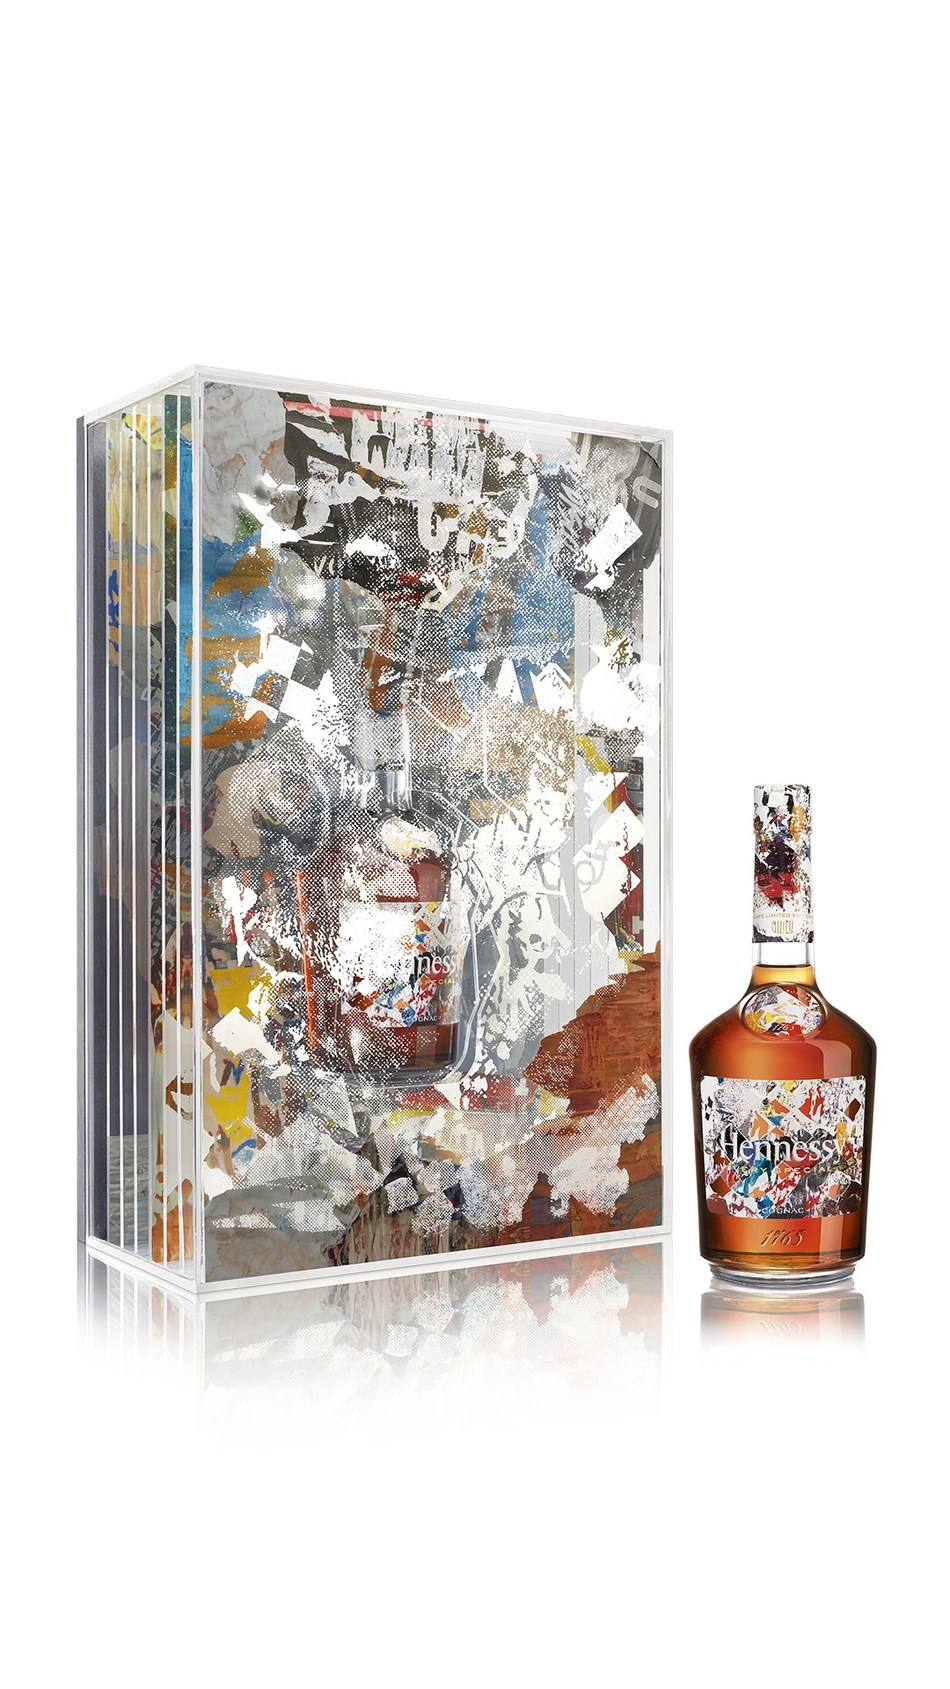 Hennessy Very Special Collector's Edition by Vhils – a limited-edition release of 100 unique individually-signed pieces designed using the art-world phenomenon's famed 'Making the Invisible Visible' technique. The new artwork is available on December 6 exclusively on Clos19.